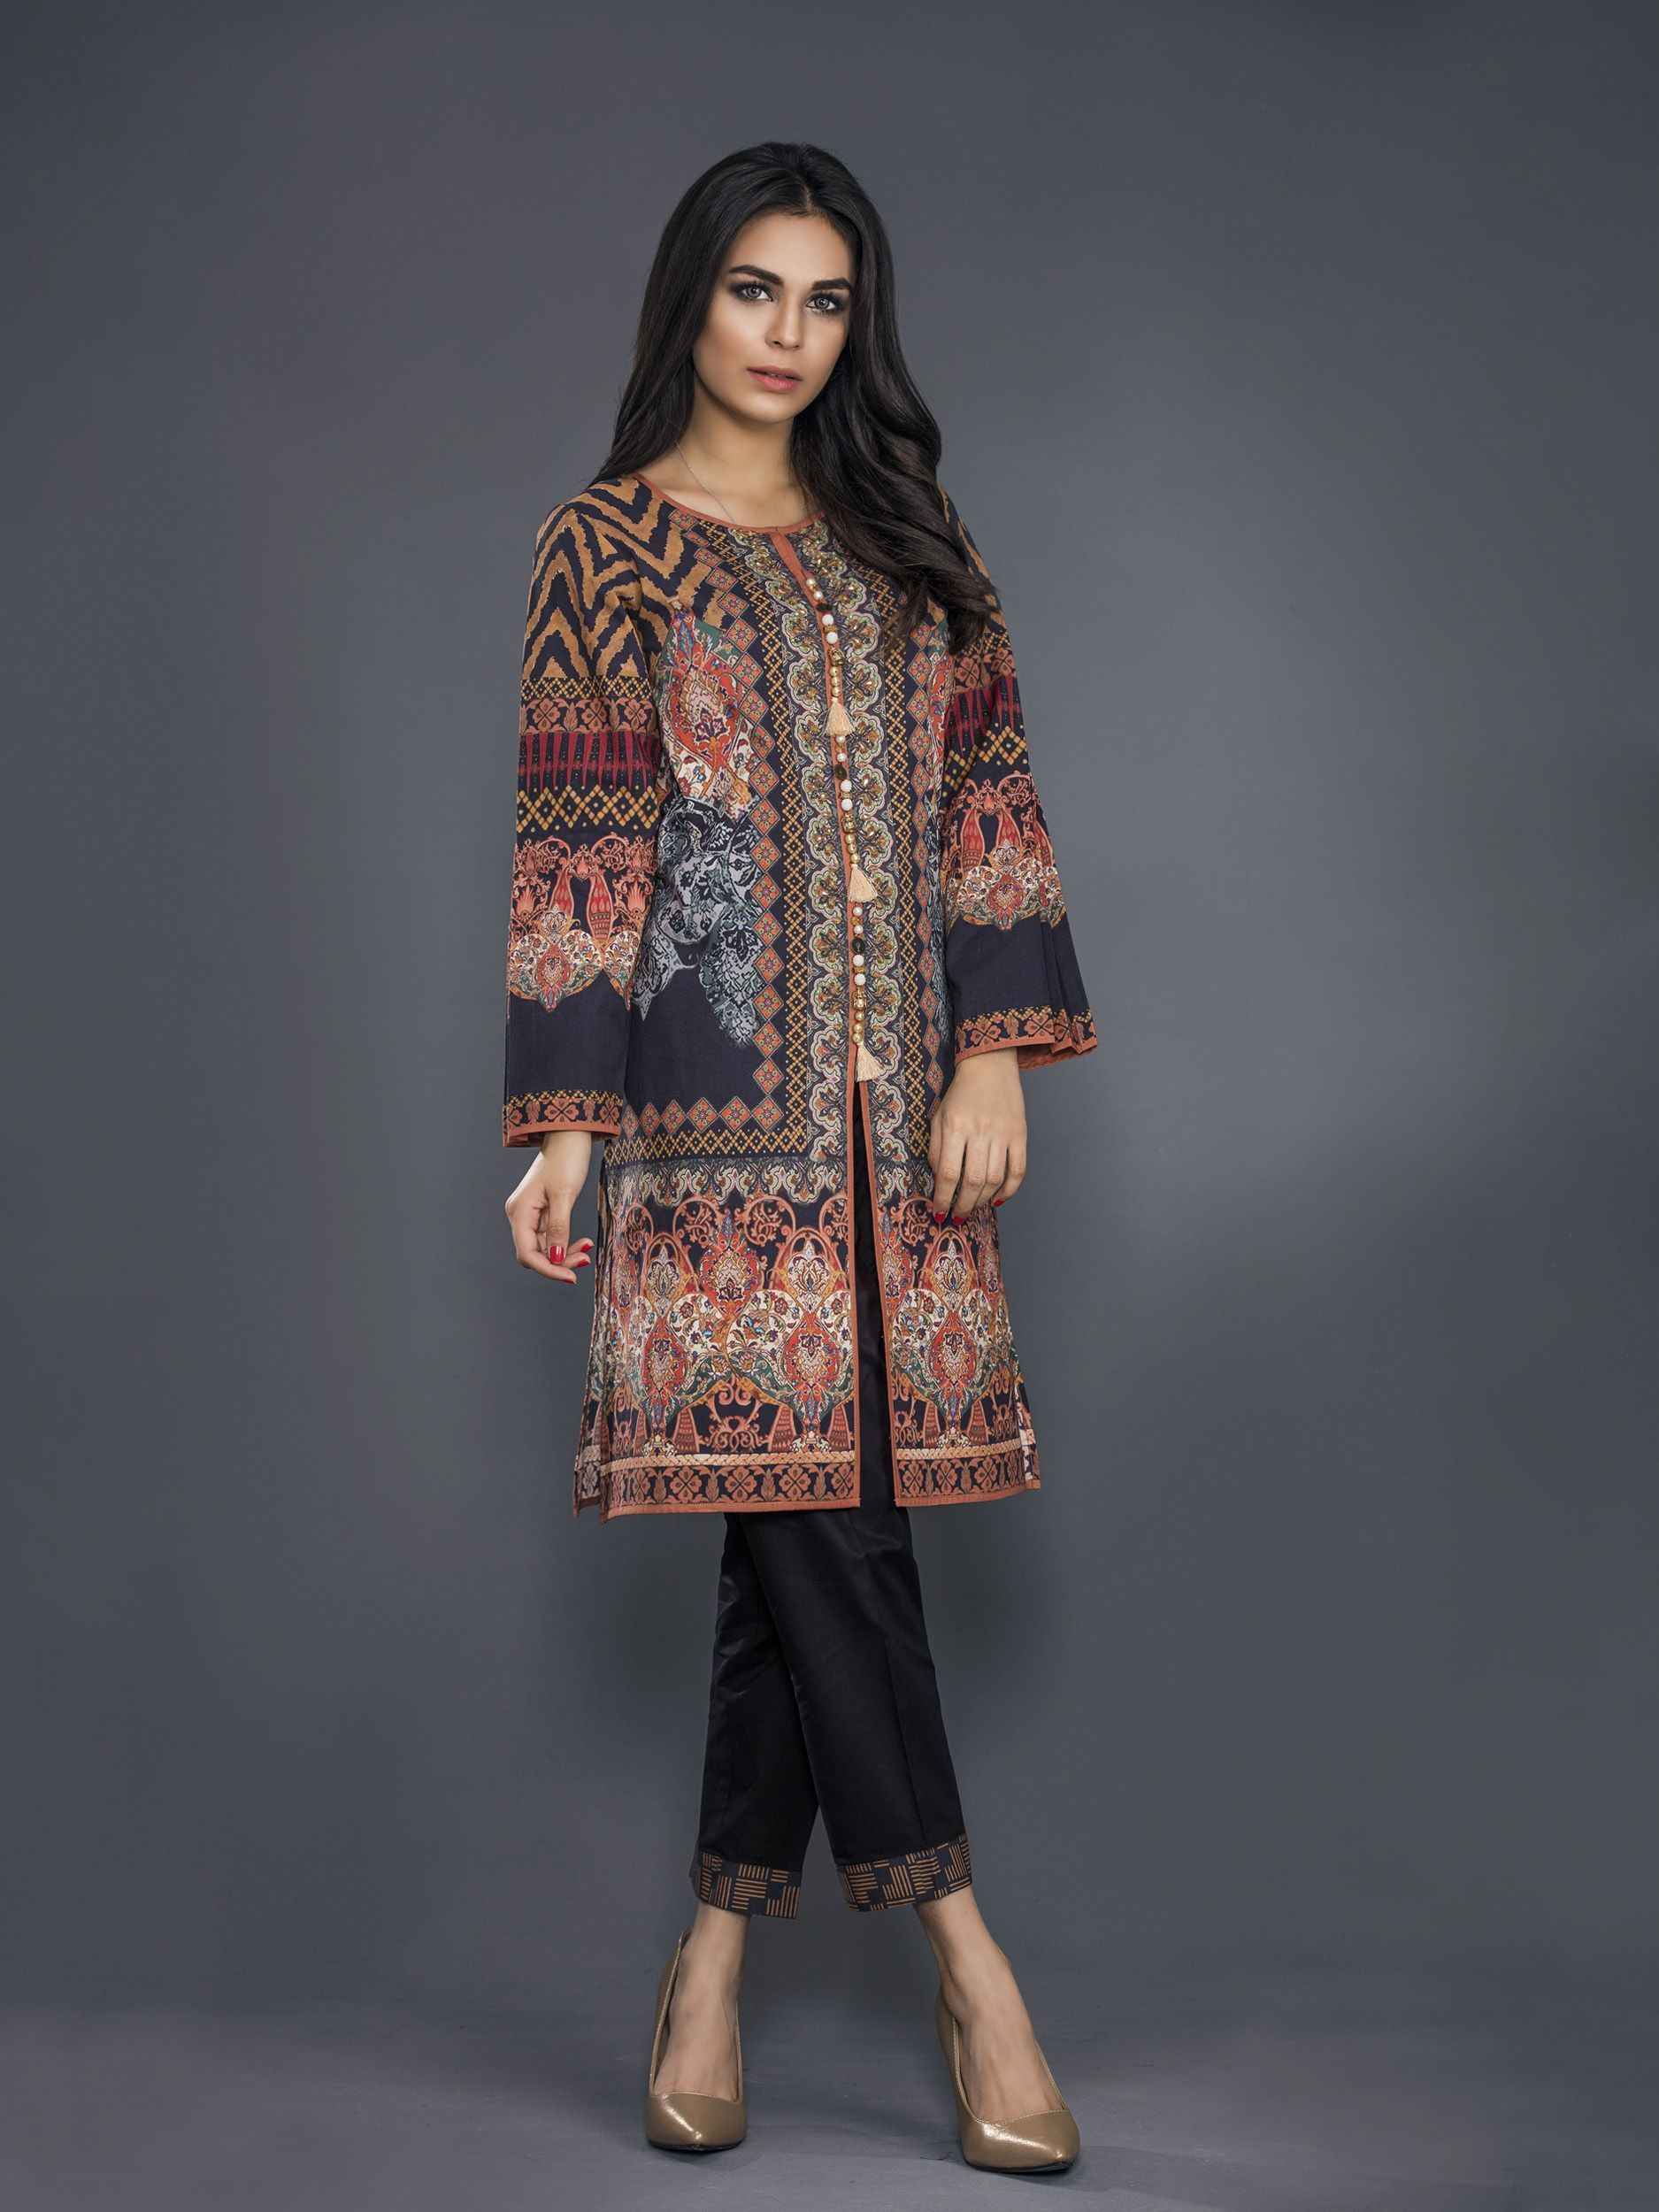 02f0624ef3 Buy Brand New Stitched Original Limelight Suits and Kurtas - UK based! What  Zara Wears